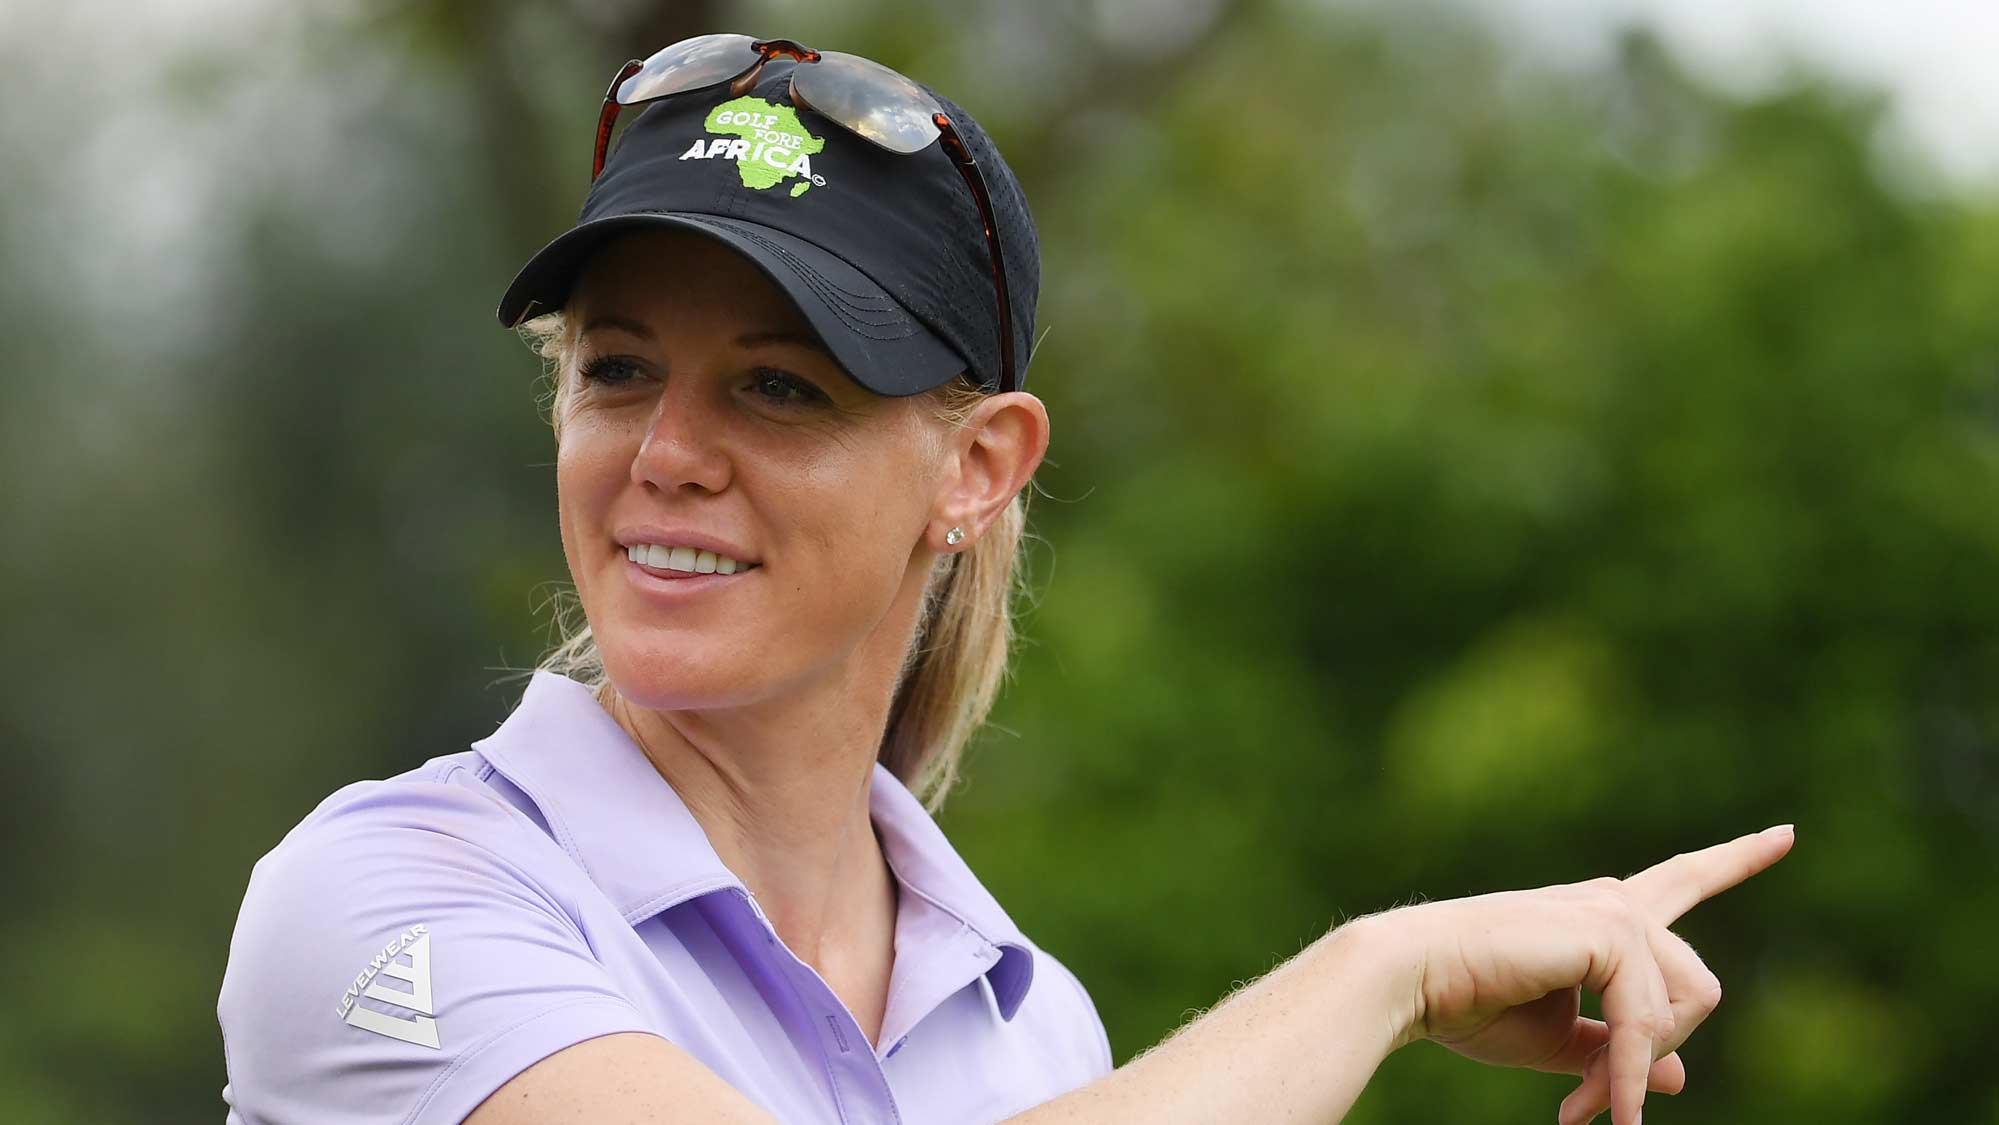 Lee in contention in Singapore LPGA event